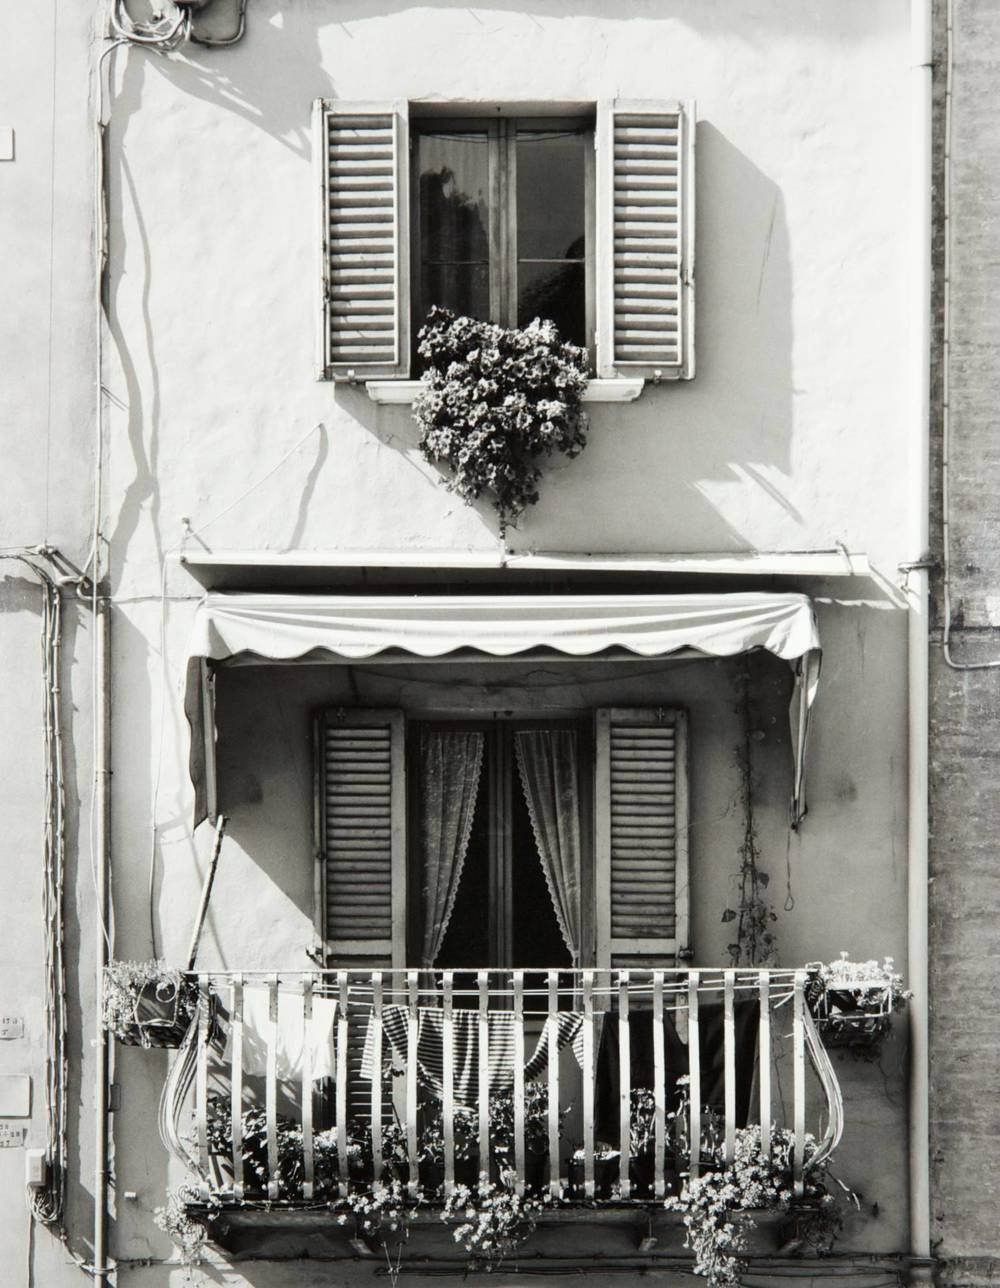 Window in Urbino (Italy)